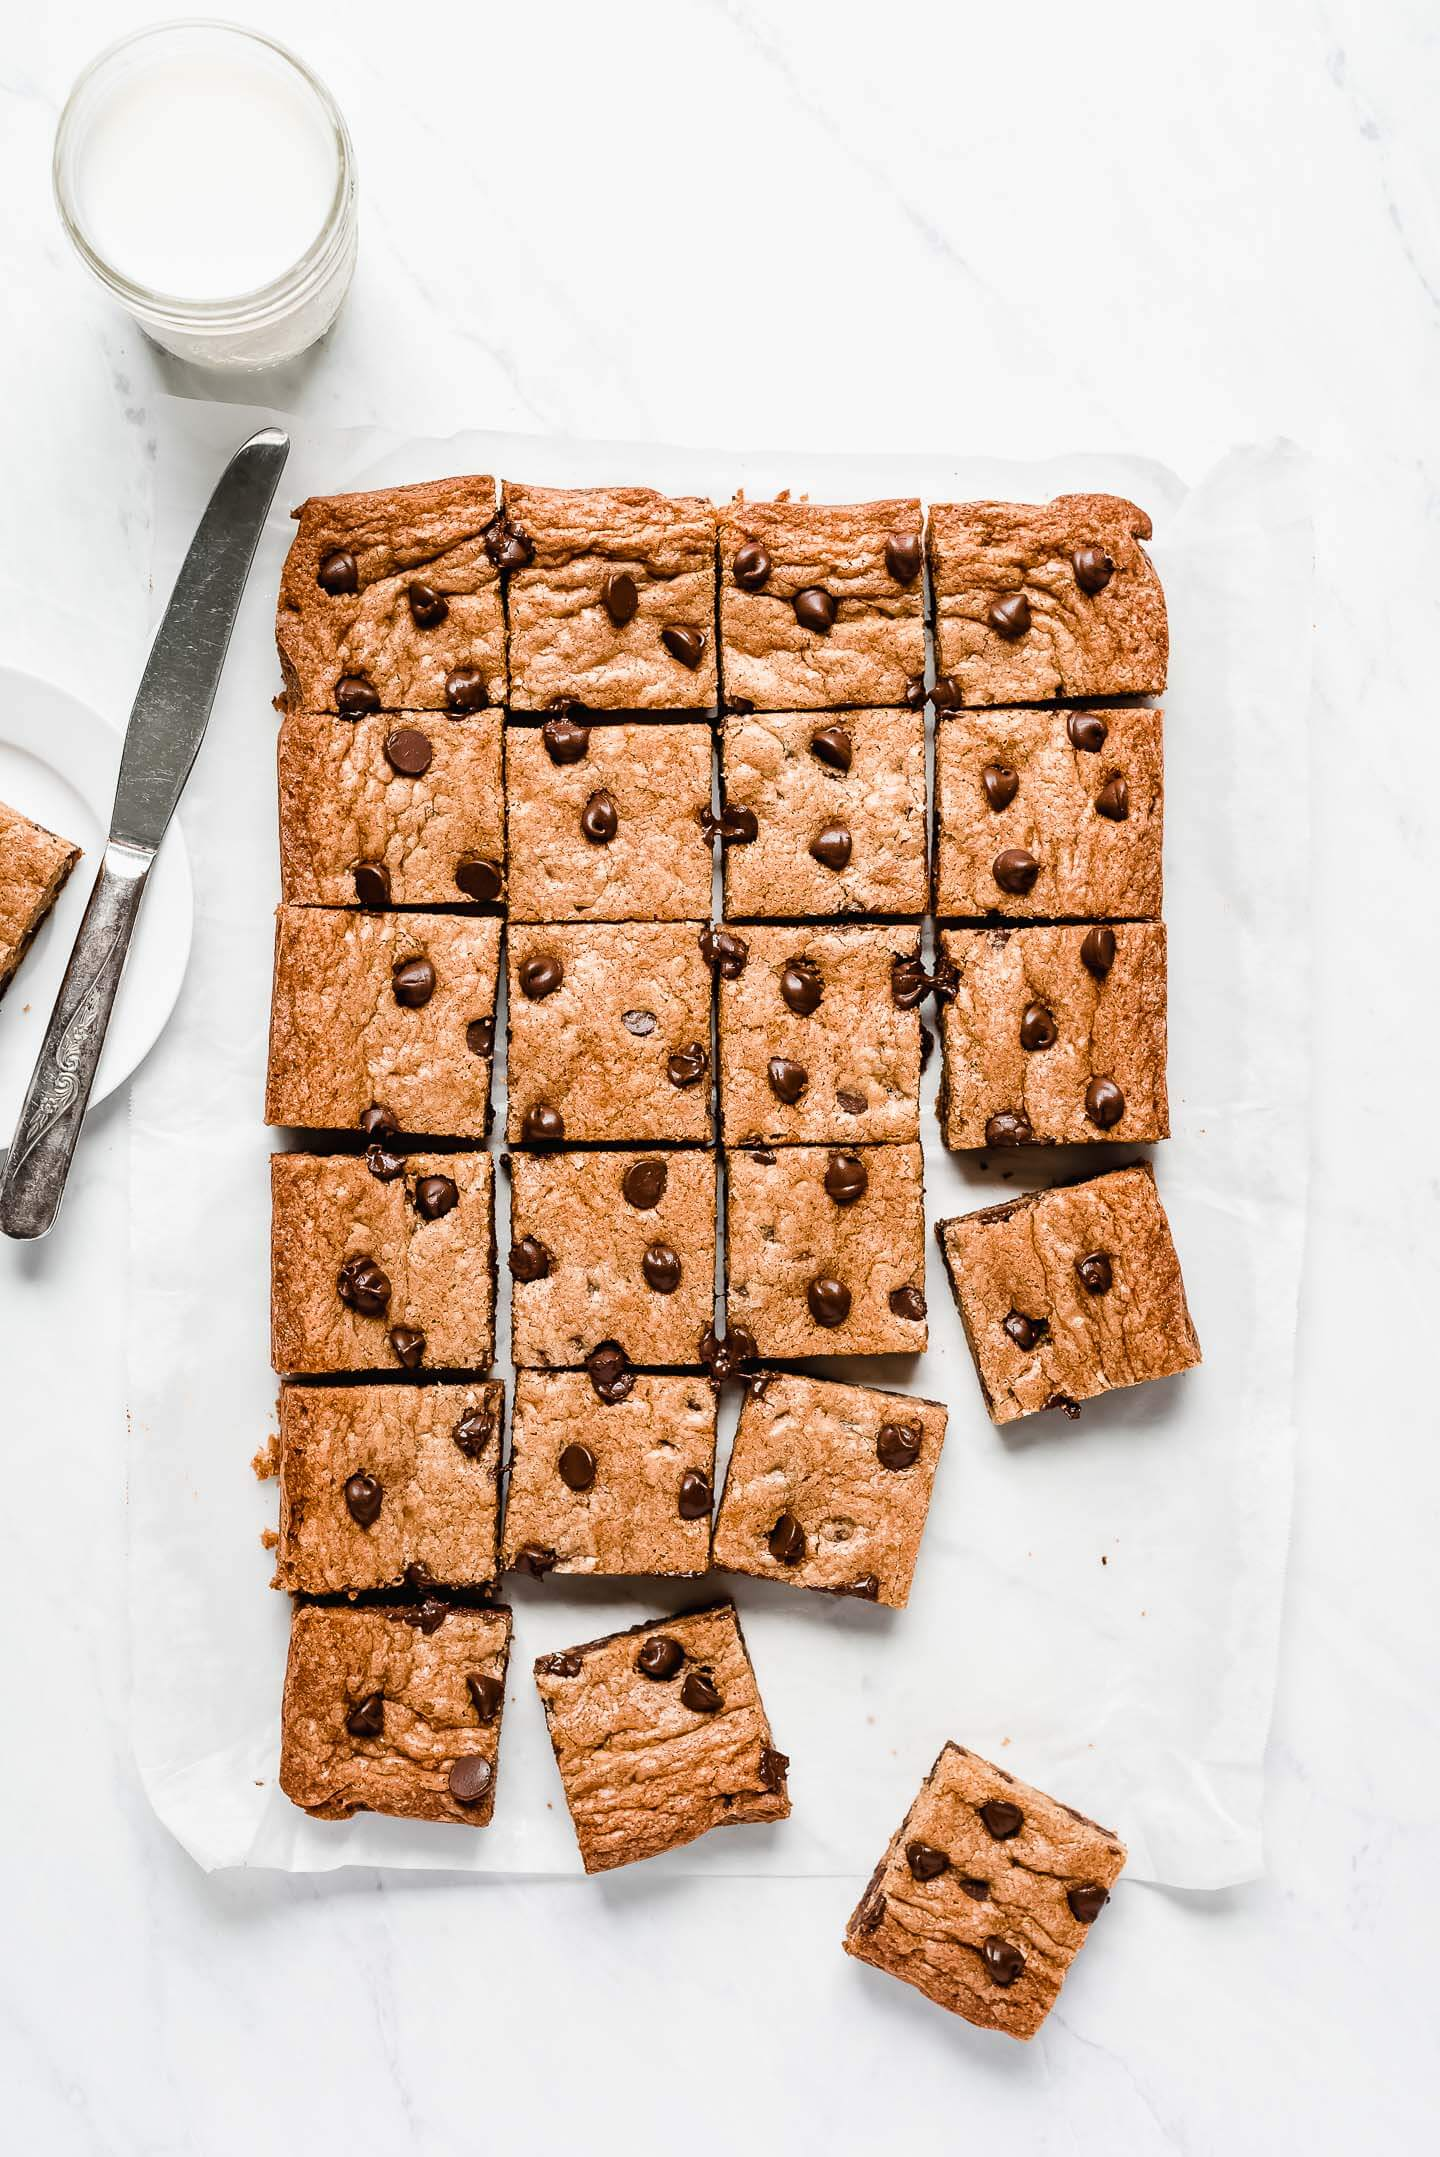 Cookie Bars cut into squared and studded with chocolate chips.